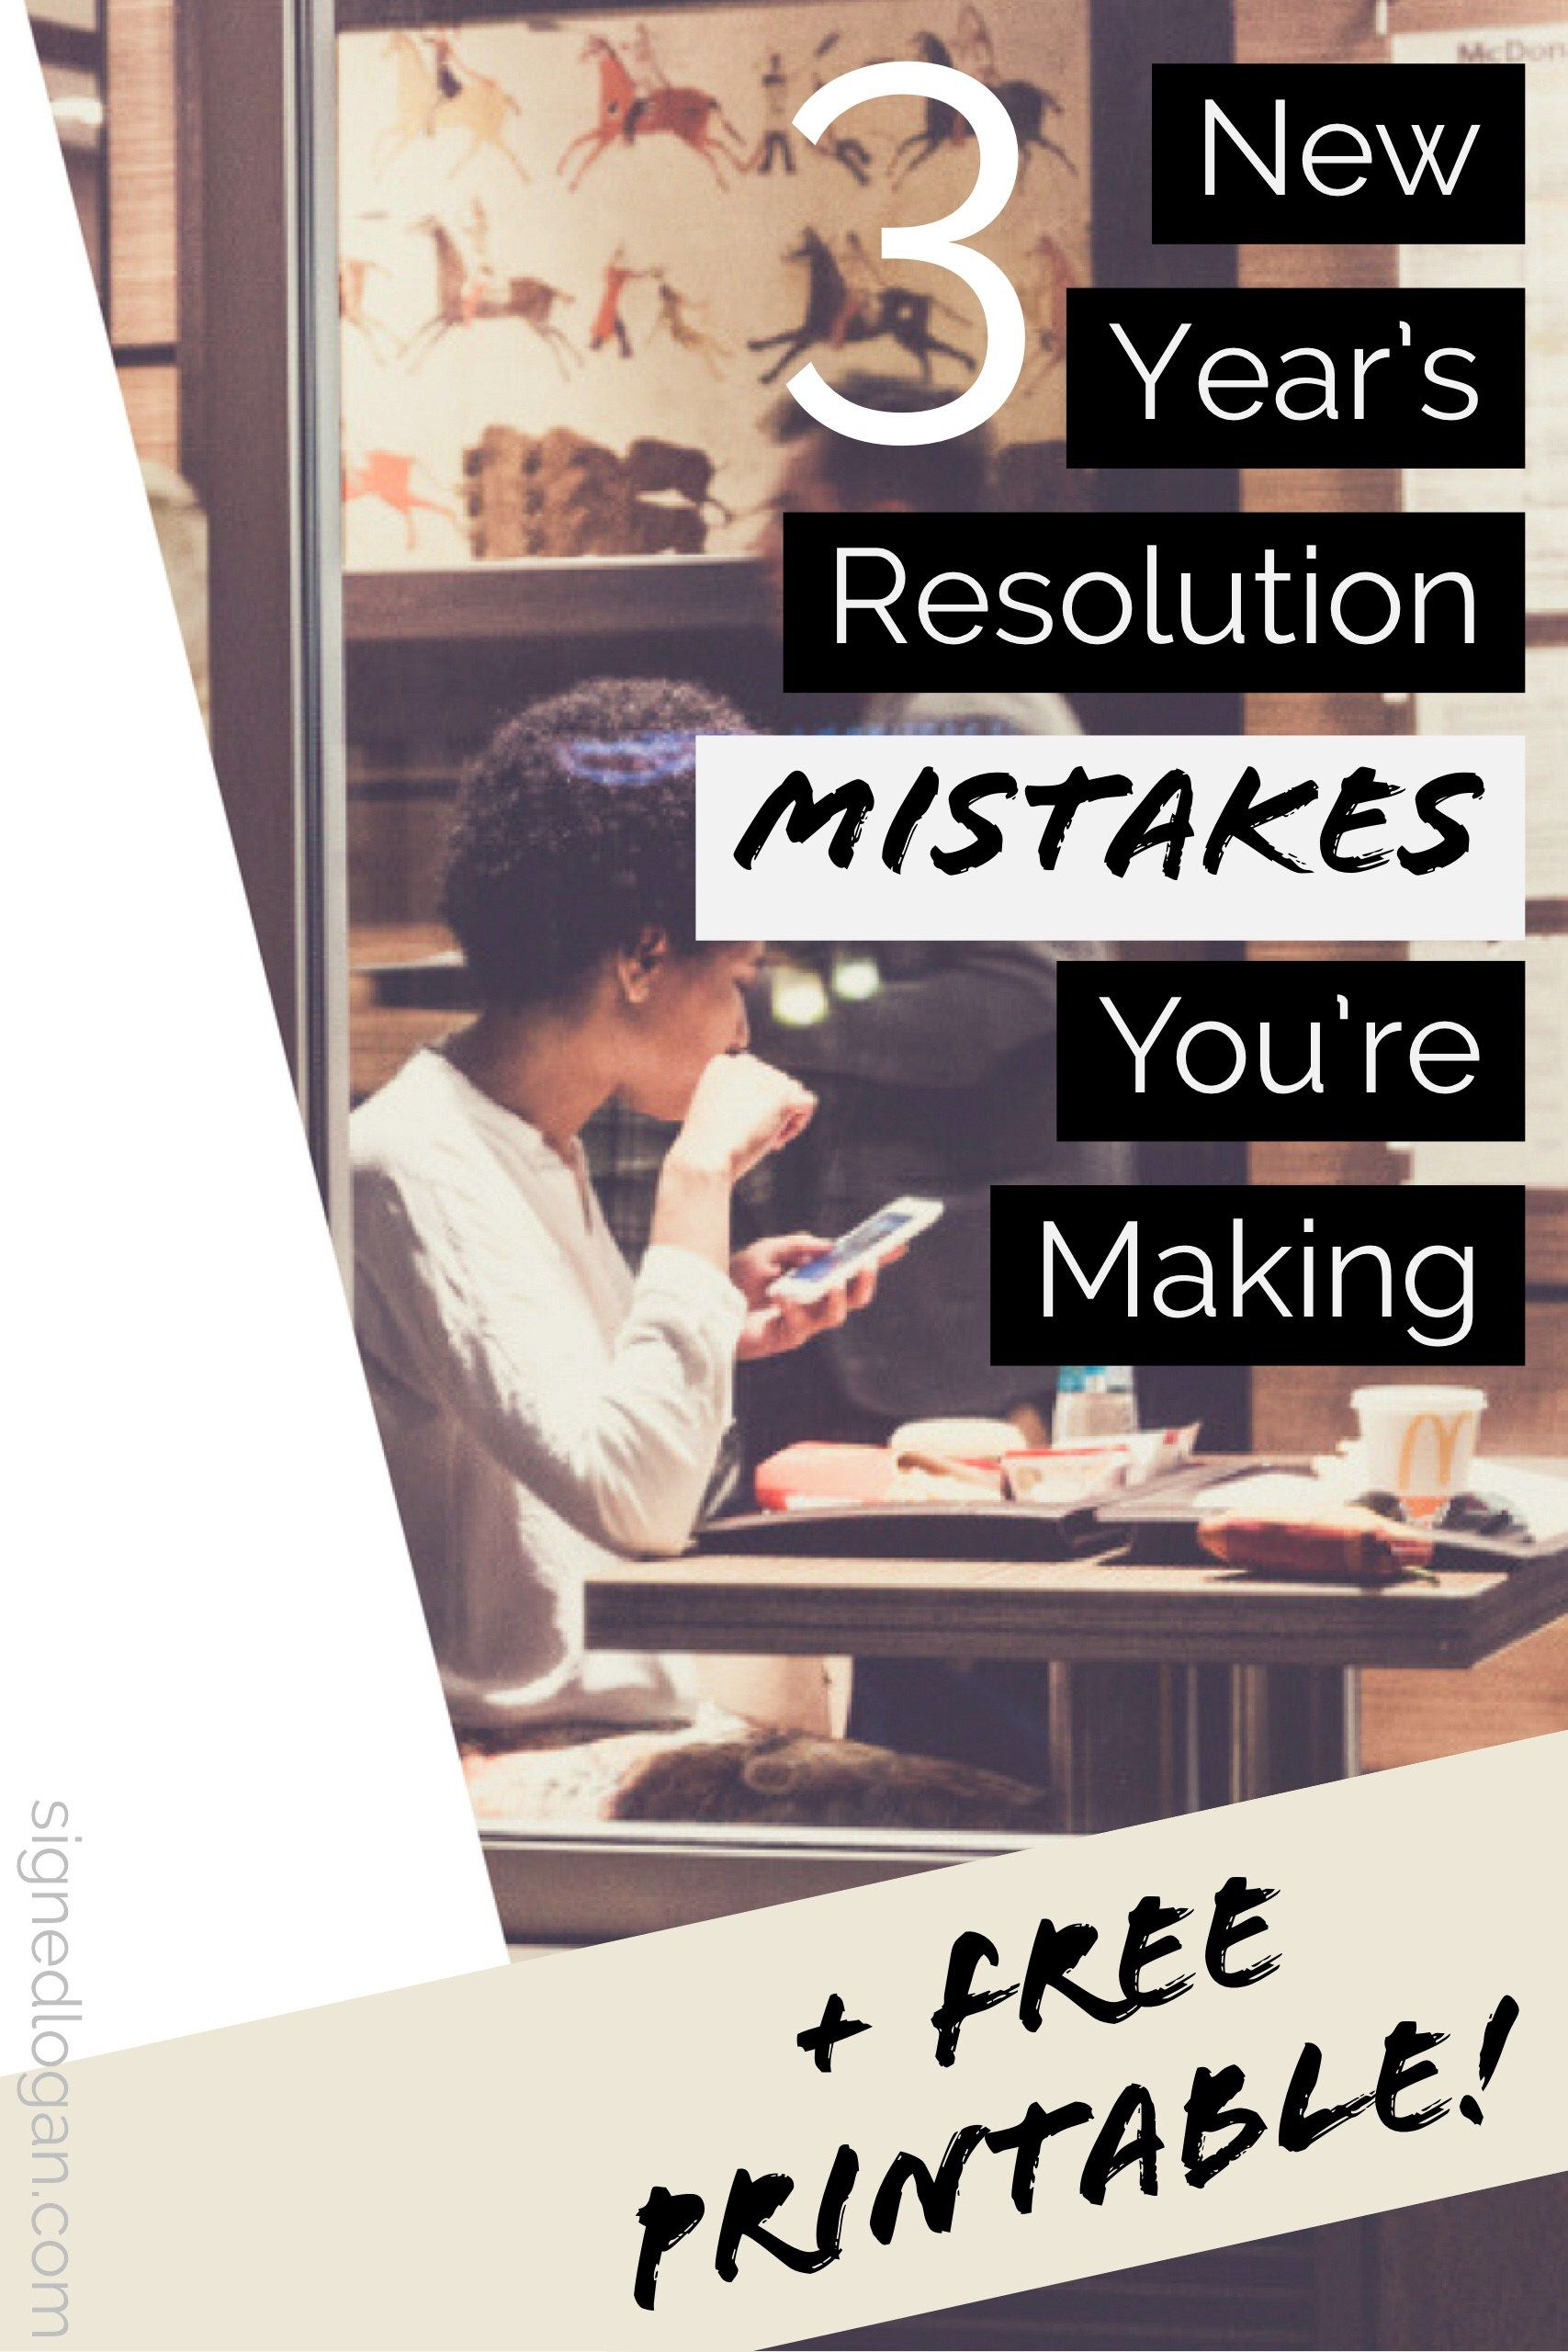 3 New Year S Resolutions Mistakes You Re Making Free